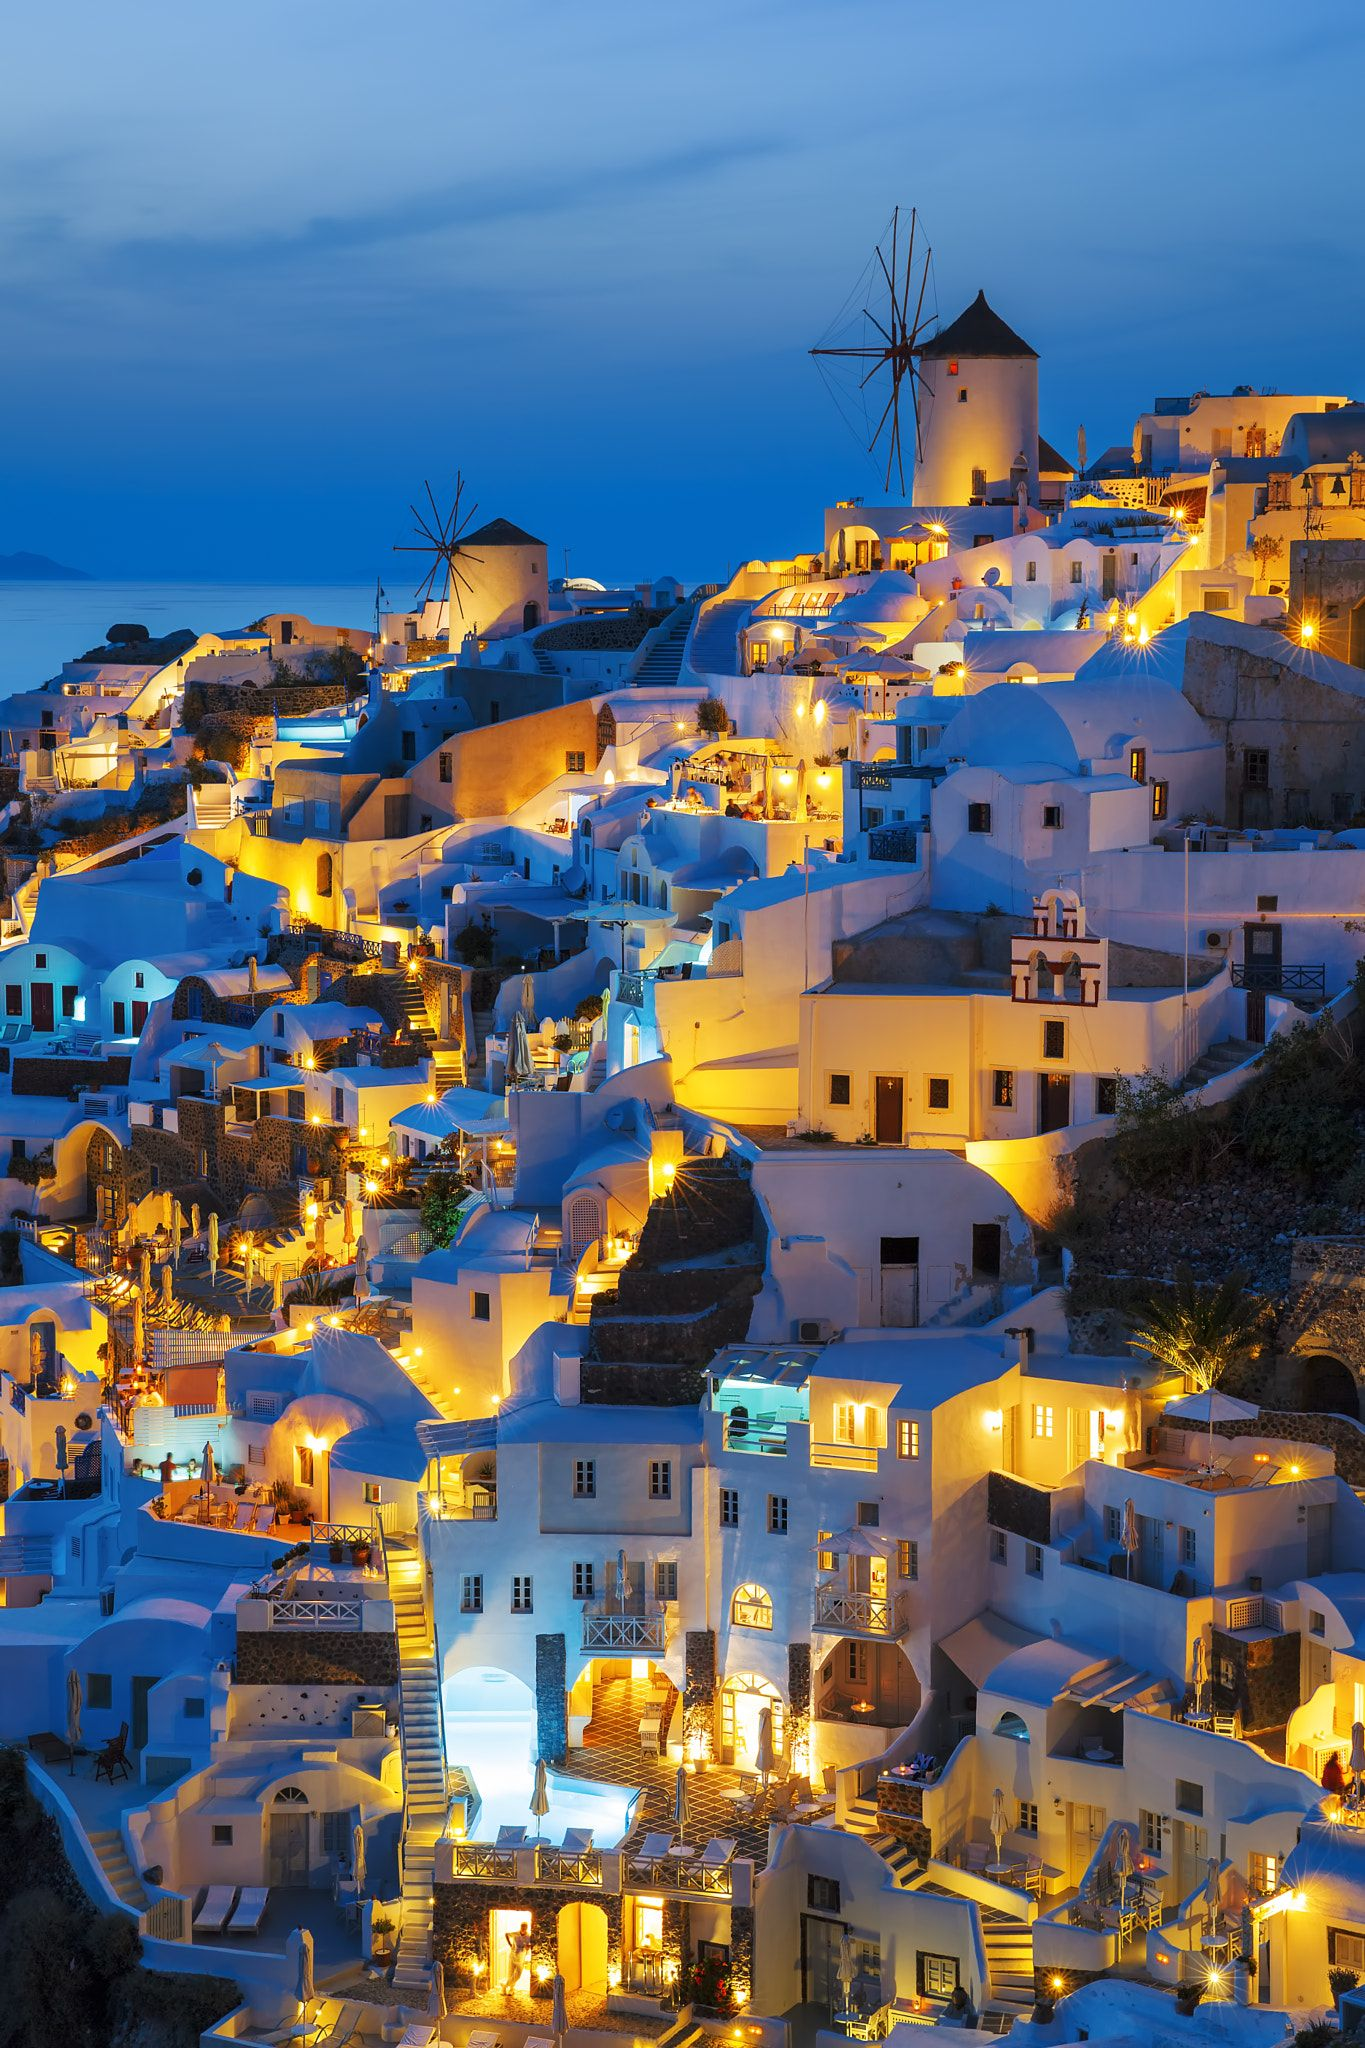 Lights Of Oia Village At Night Lights Of Oia Village At